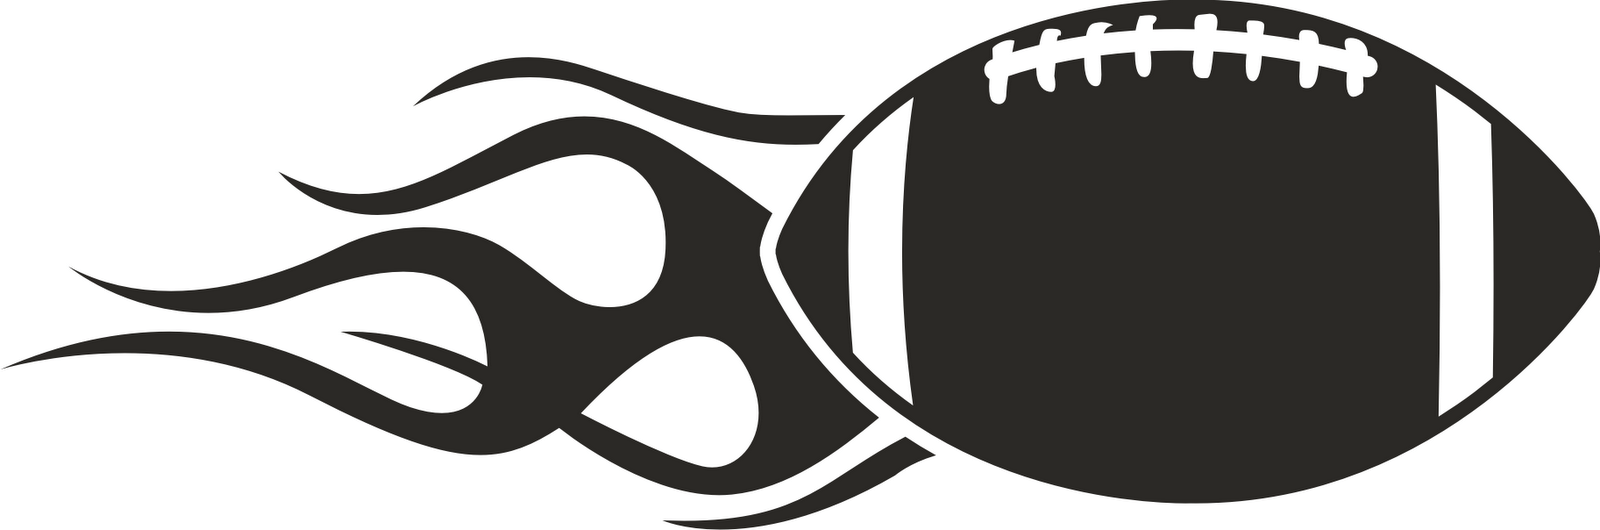 hight resolution of football black and white black football clipart free lyne visualdnsnet